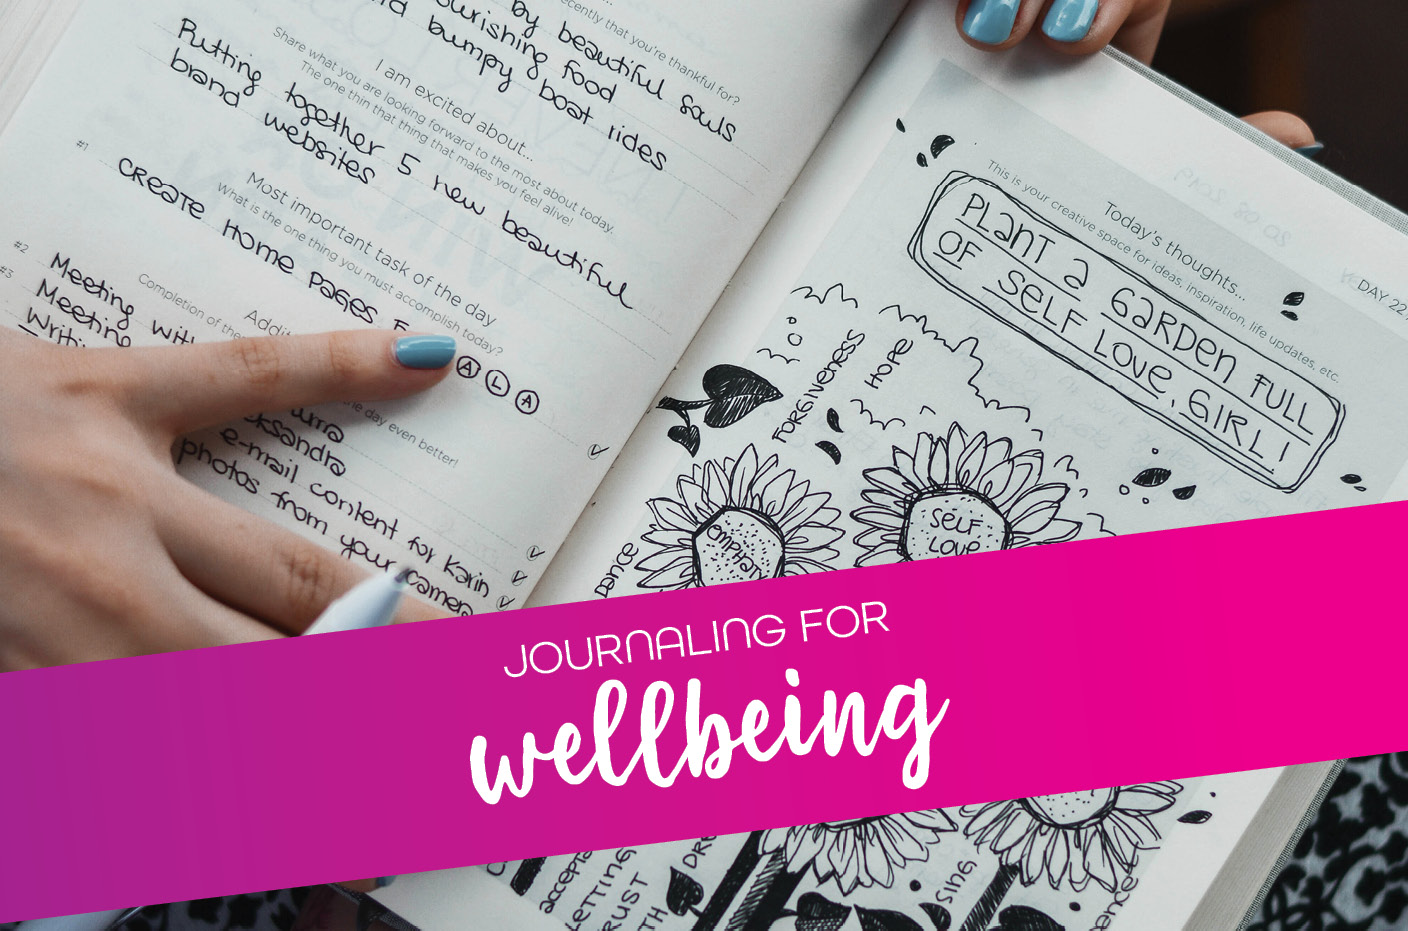 Journaling For Wellbeing